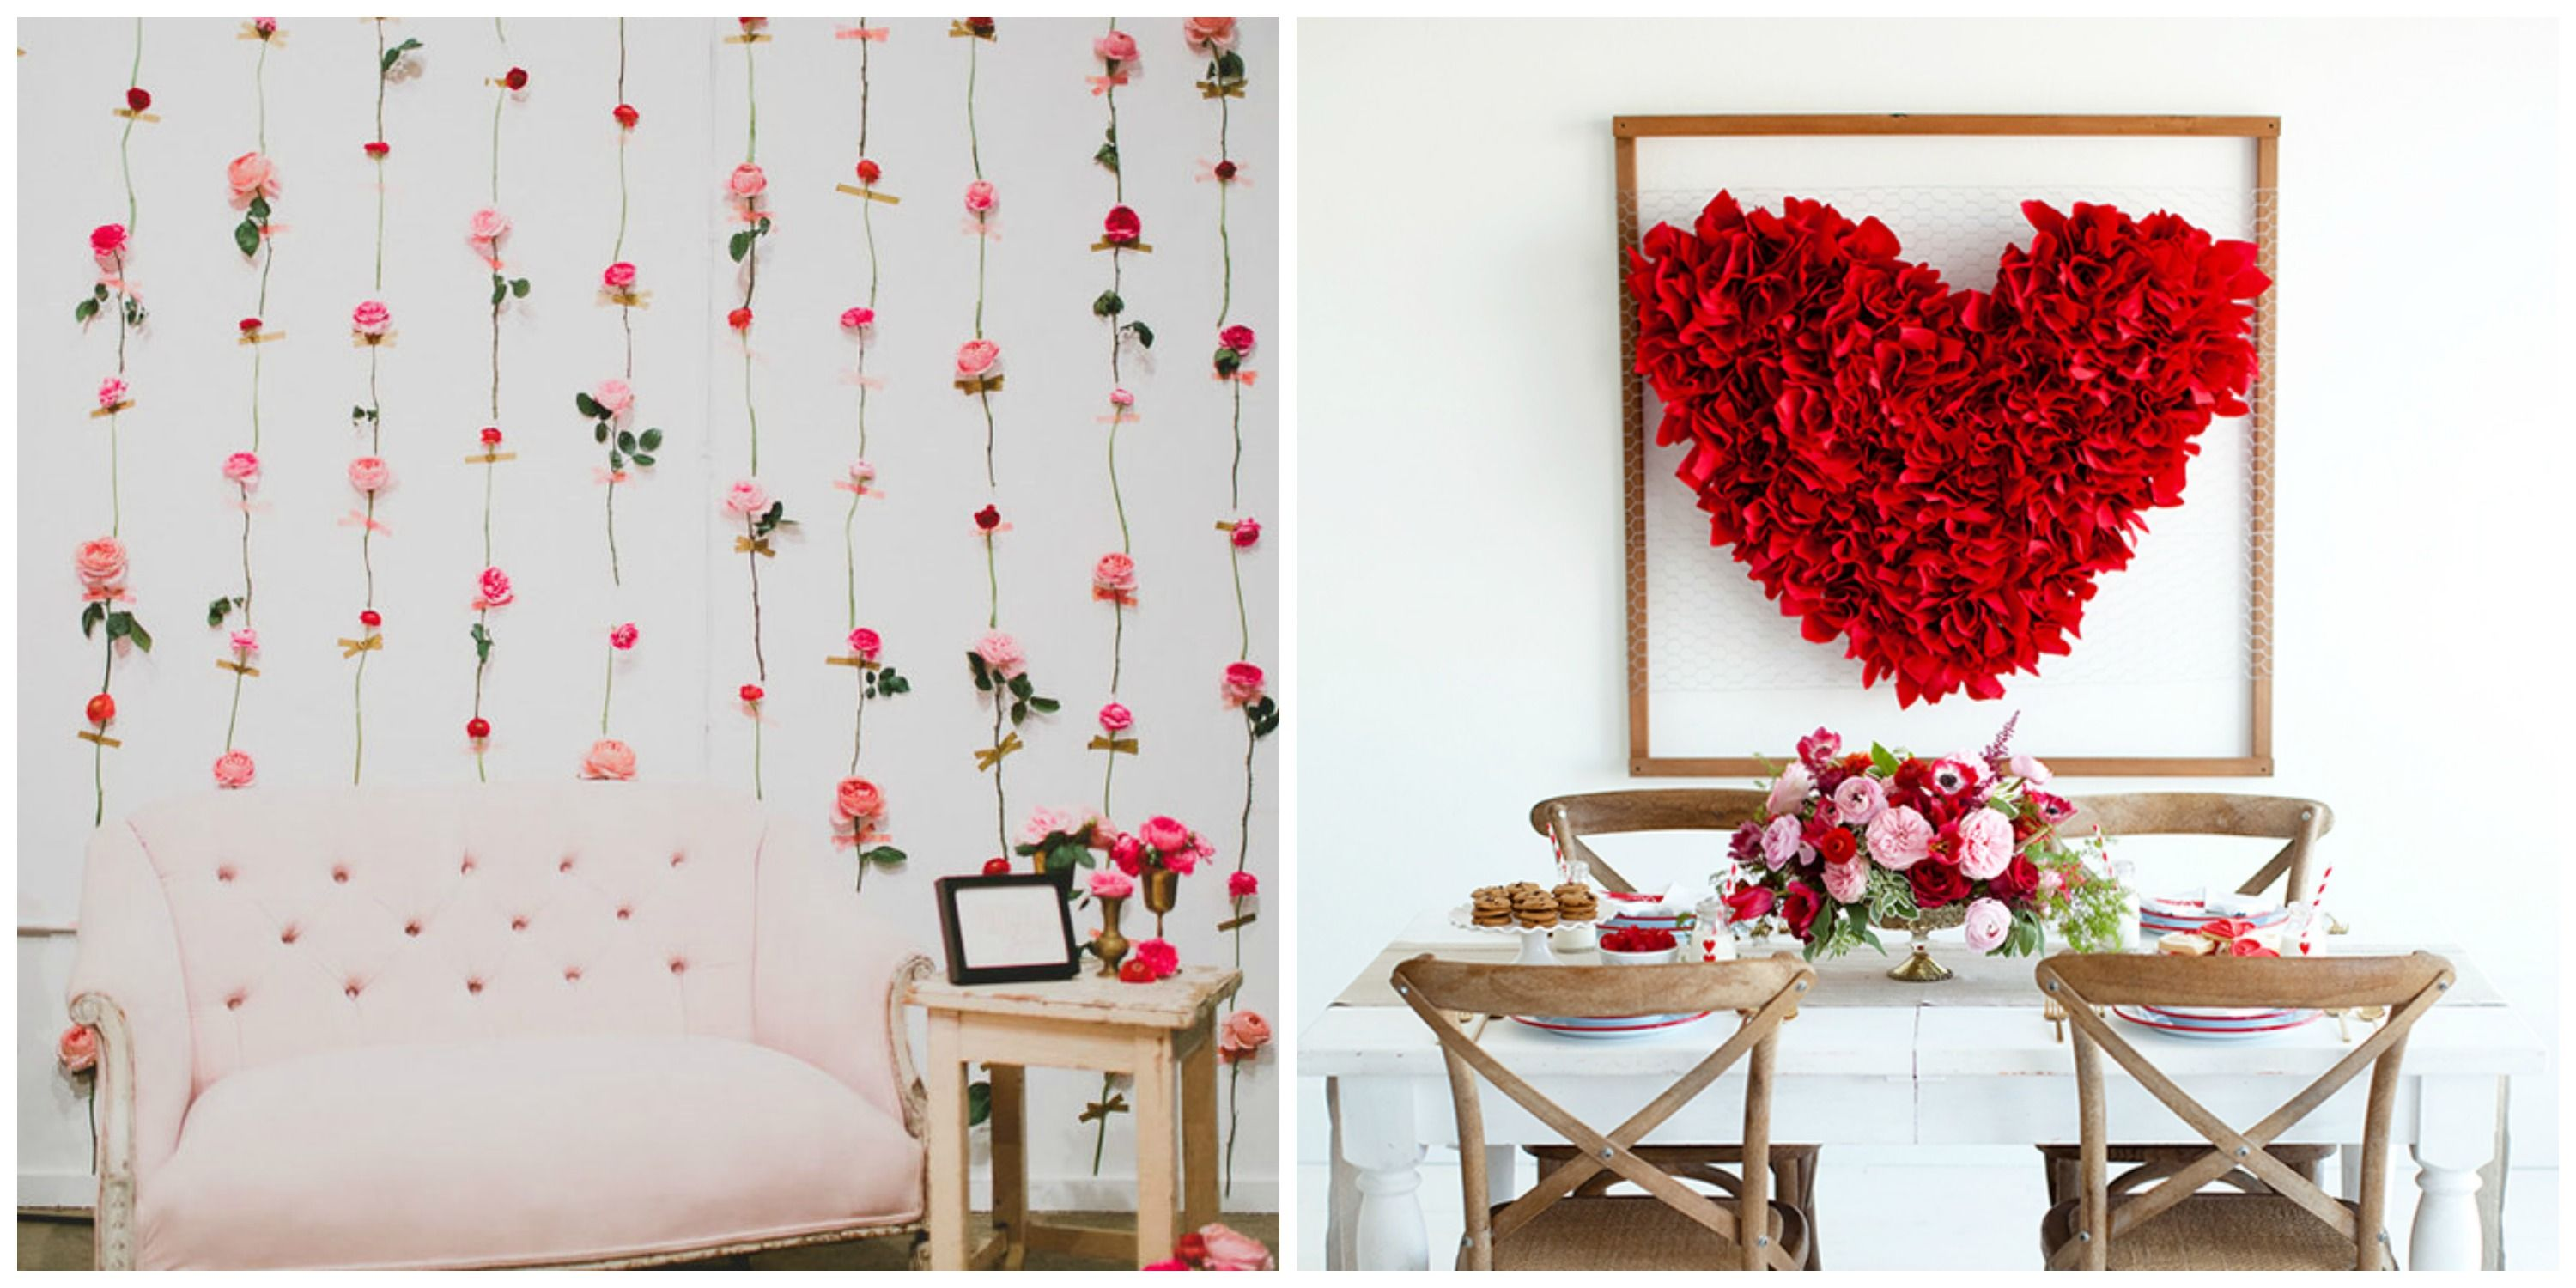 14 diy valentines day decorations best homemade decorating ideas for valentines day - Homemade Valentine Decorations